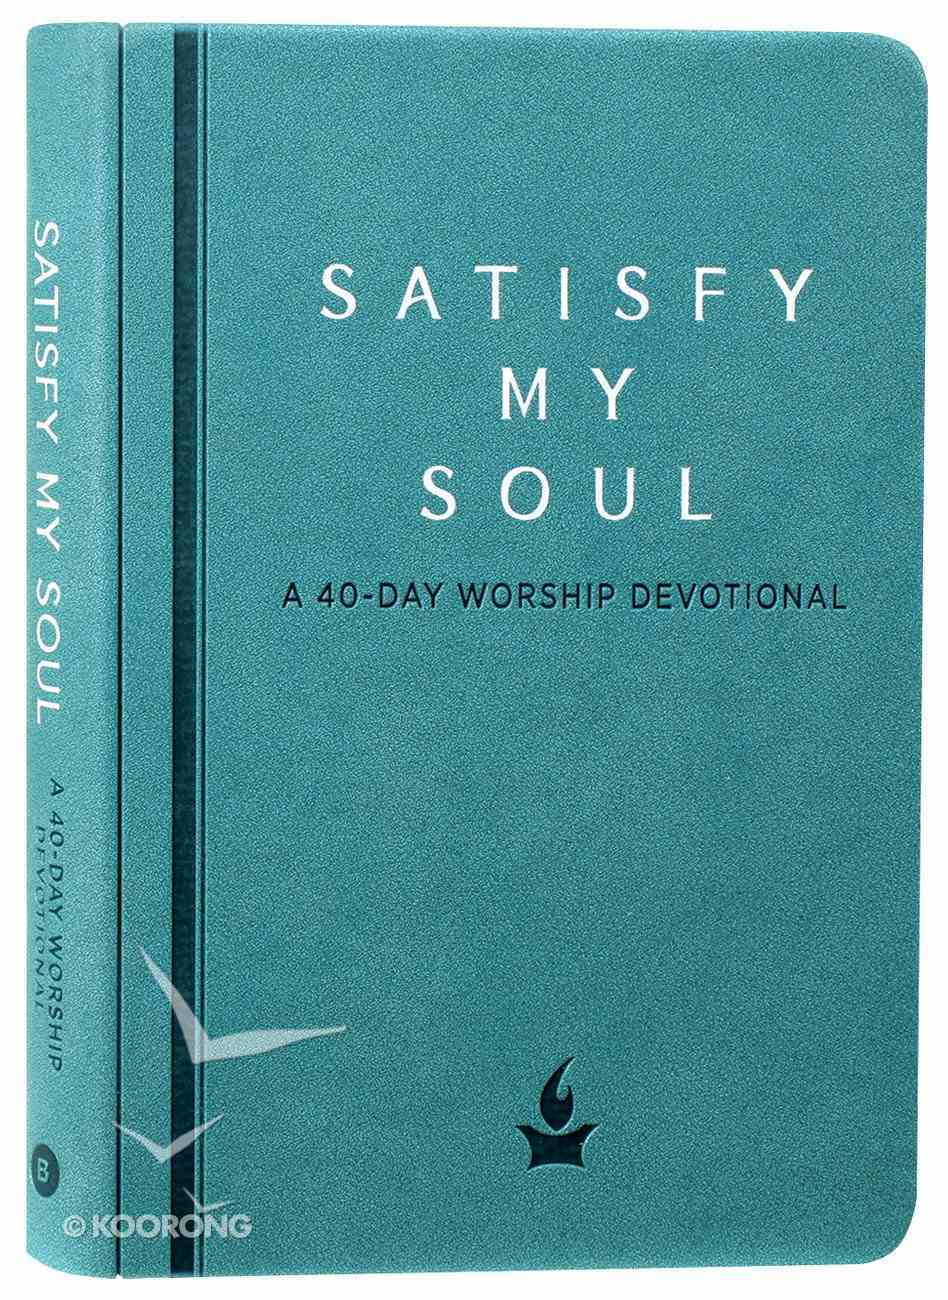 Satisfy My Soul: A 40-Day Worship Devotional Imitation Leather